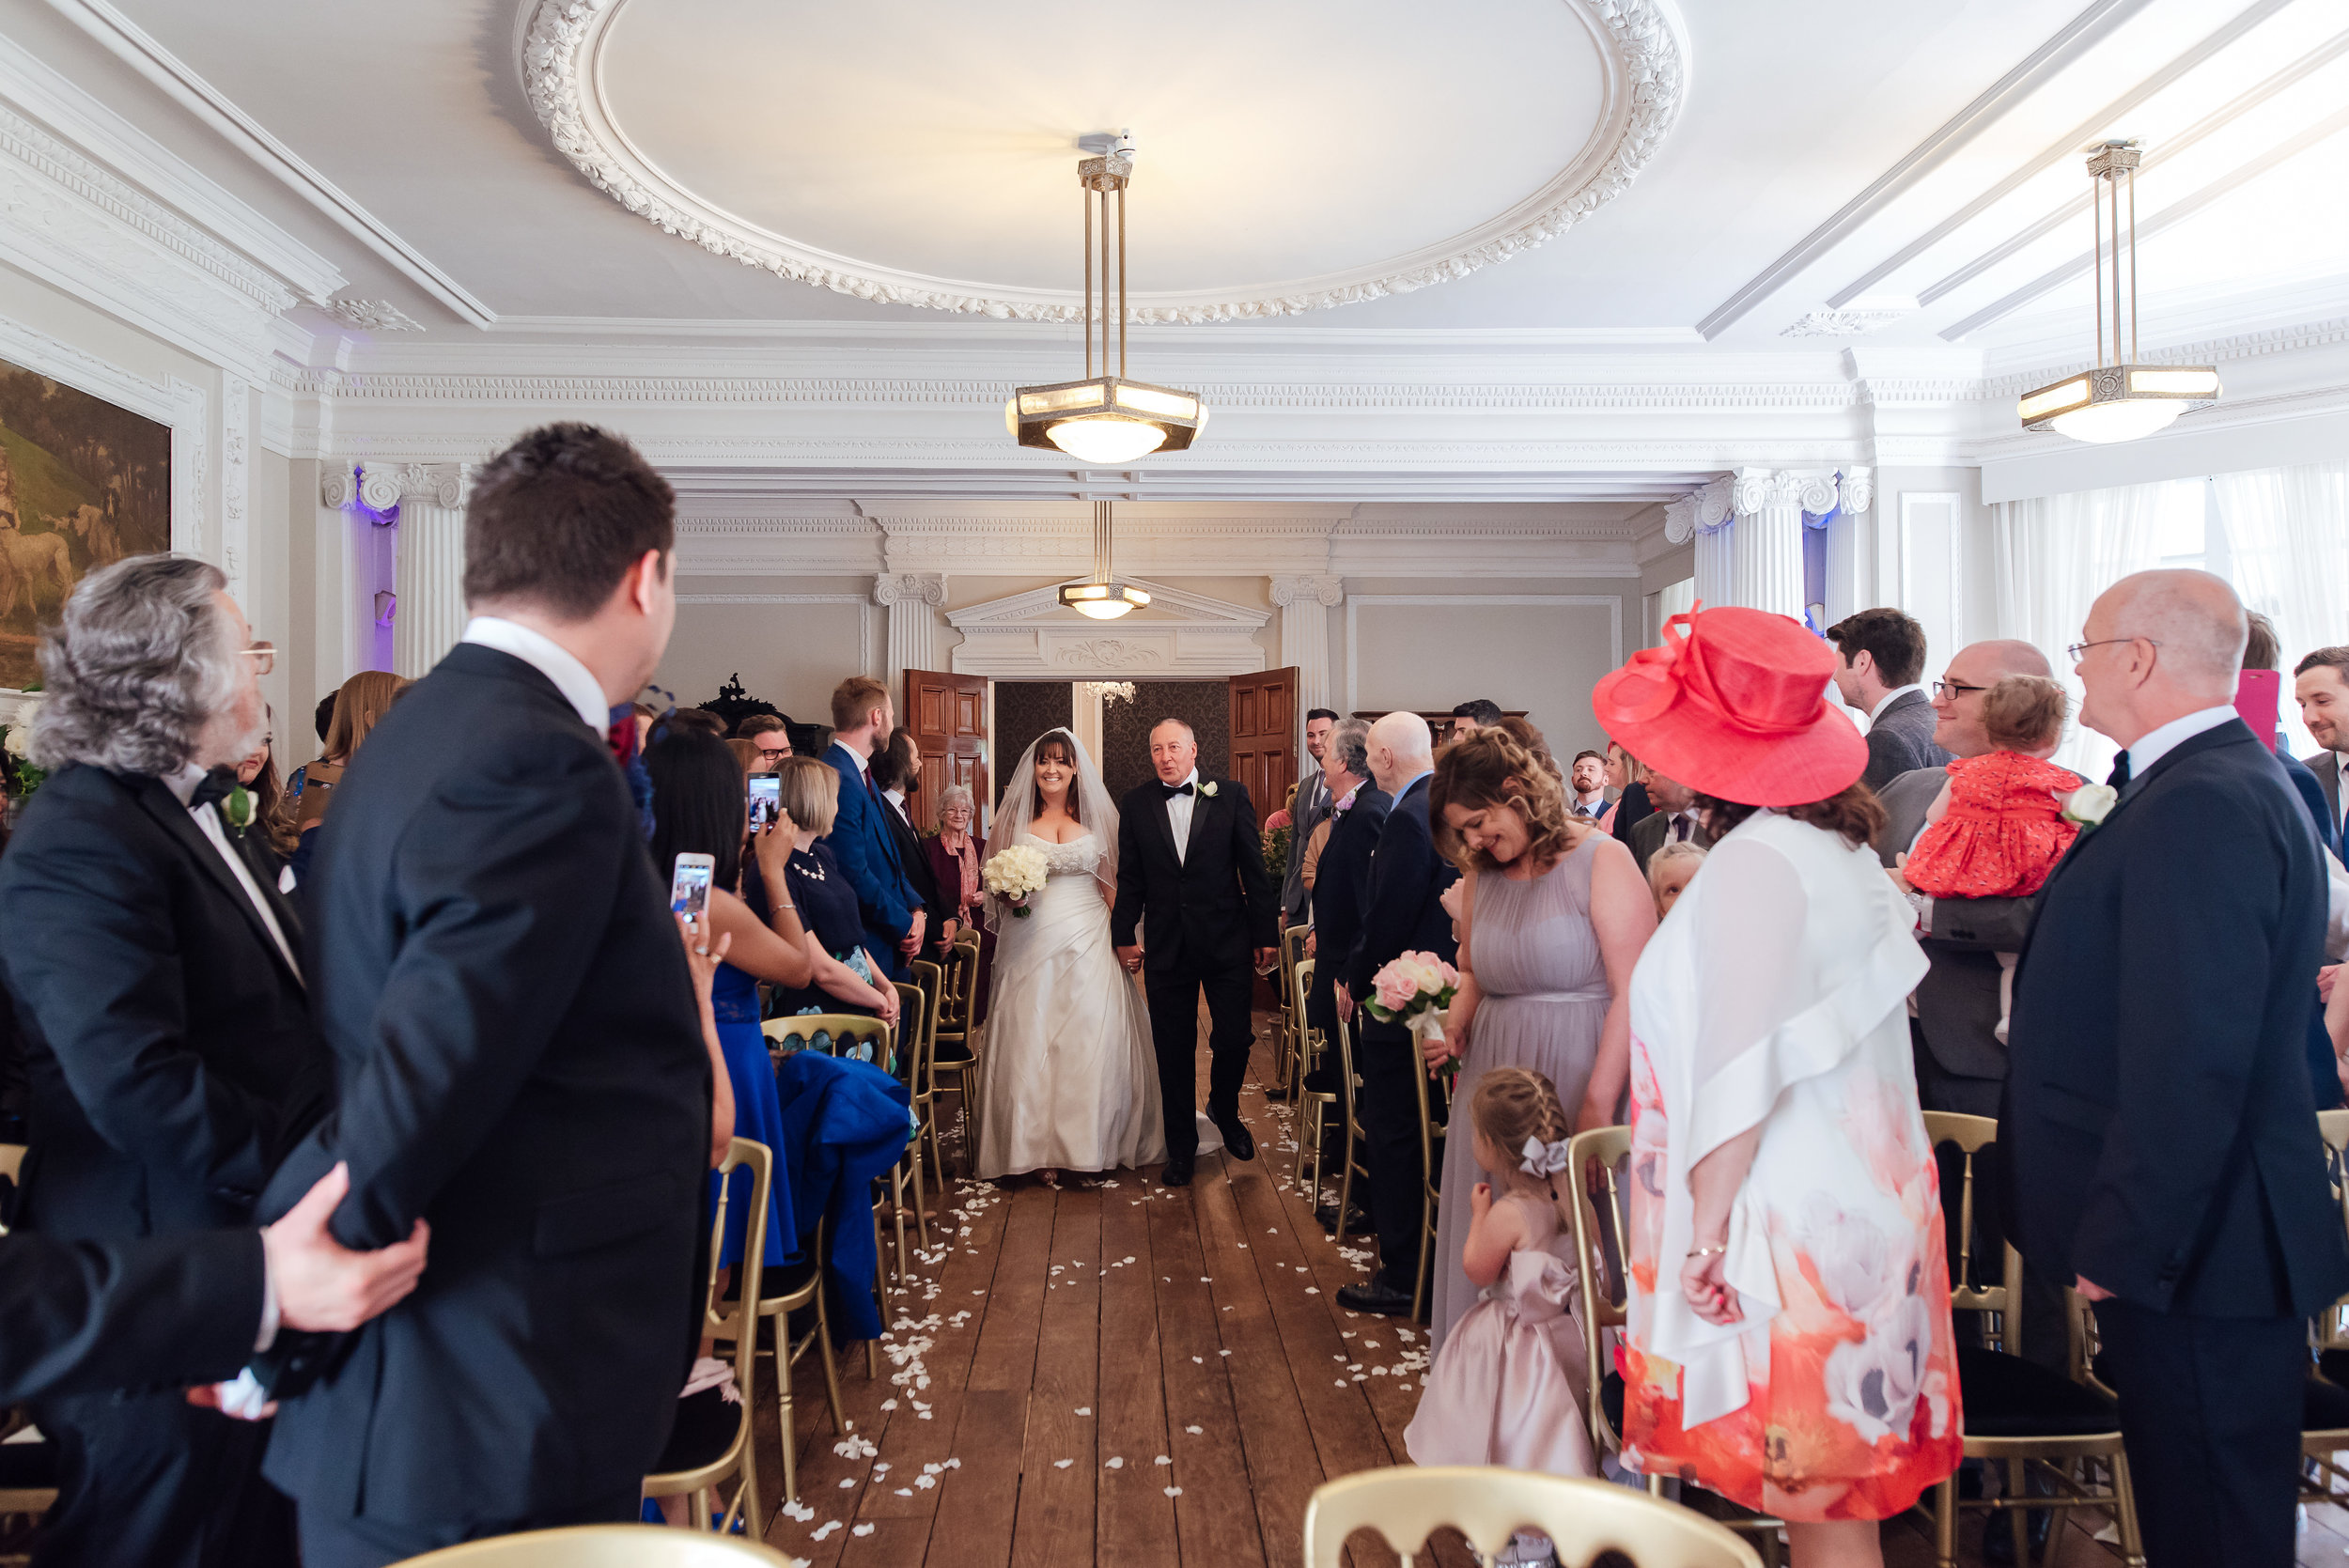 Wedding ceremony at Heatherden Hall Pinewood Studios - Amy James Photography - Wedding photographer Hampshire